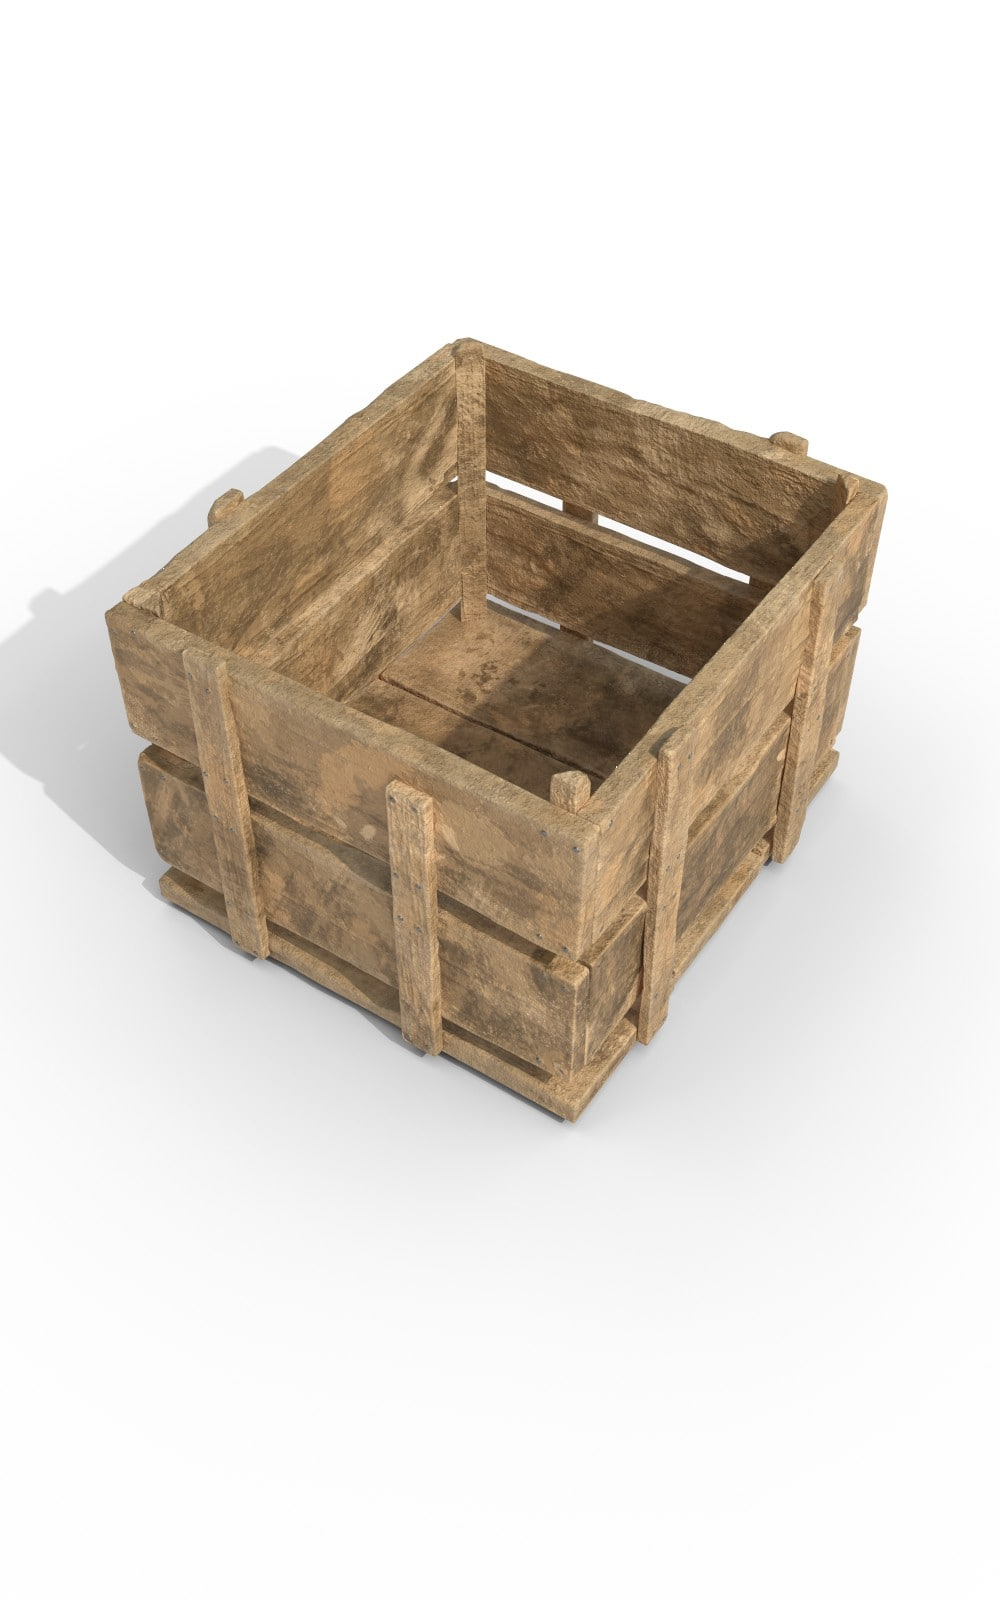 Wooden Case Storage Premium 3D Model - image 2